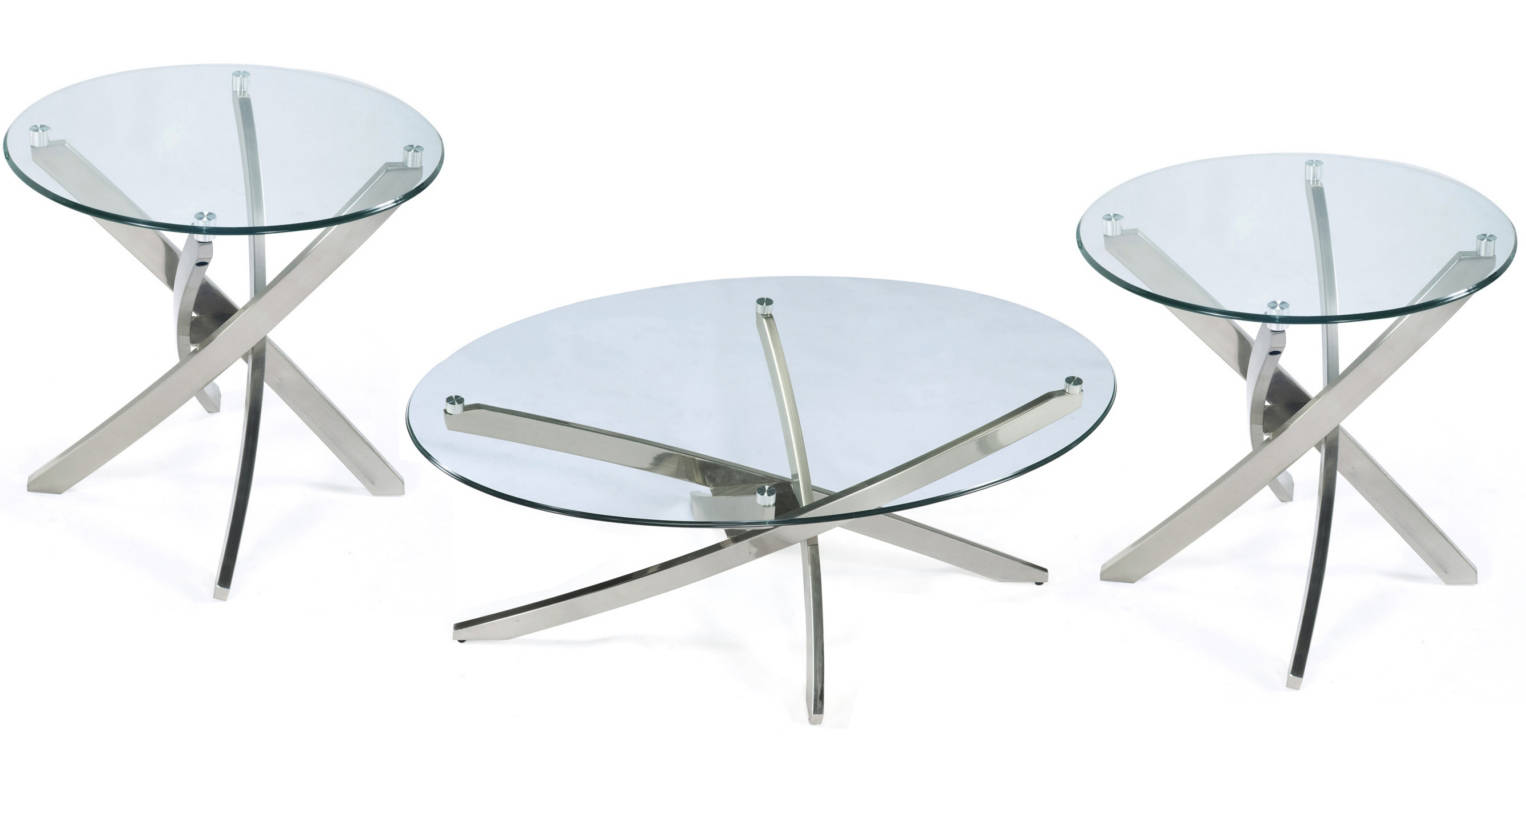 Magnussen Home Zila Nickel 3pc Oval Coffee Table Set The Classy Home